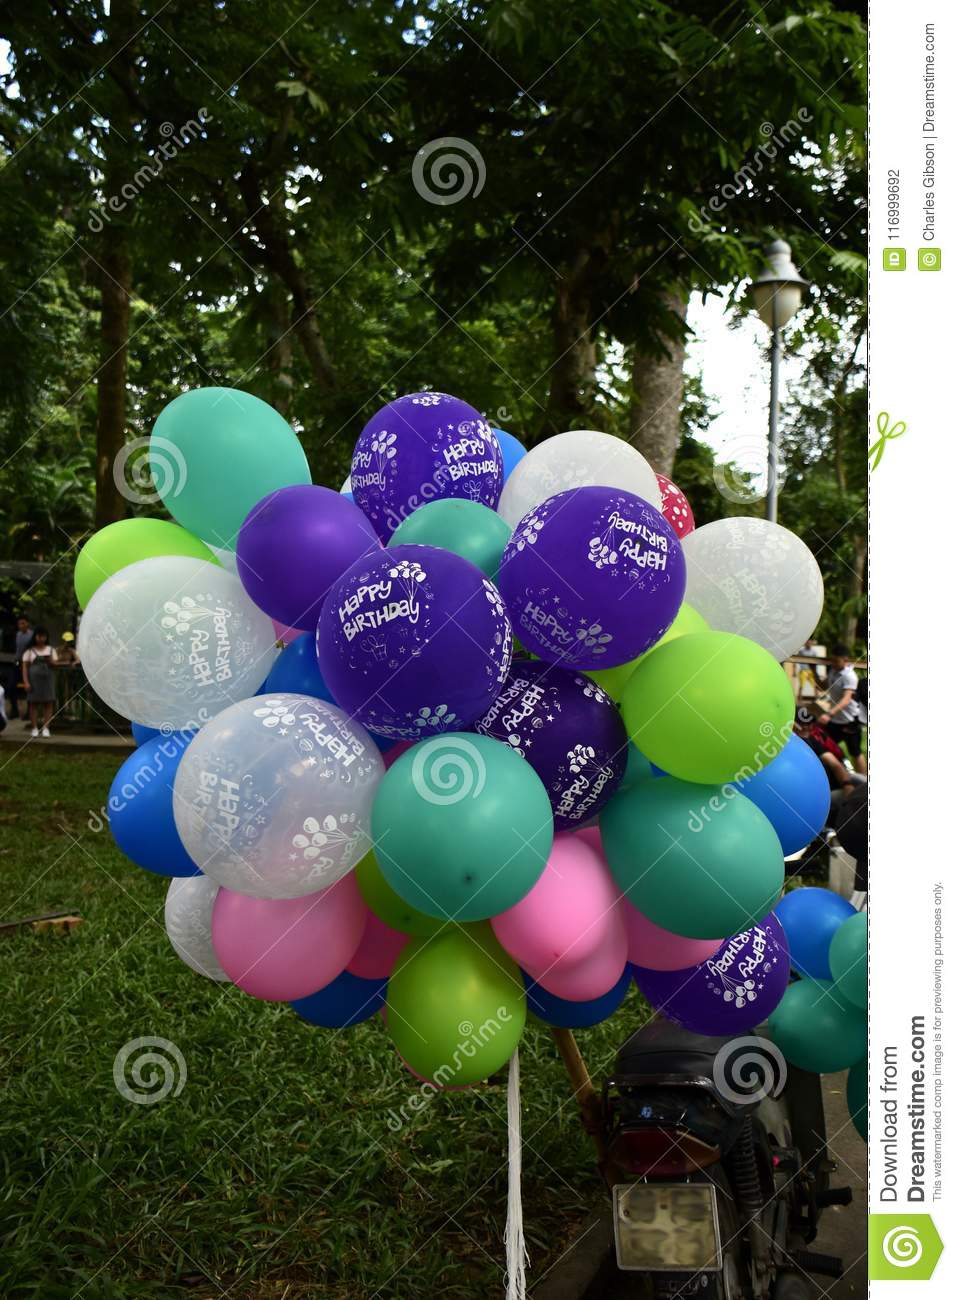 Colourful Birthday Balloons On Sale Here At Saigon Zoo In Ho Chi Minh City Vietnam